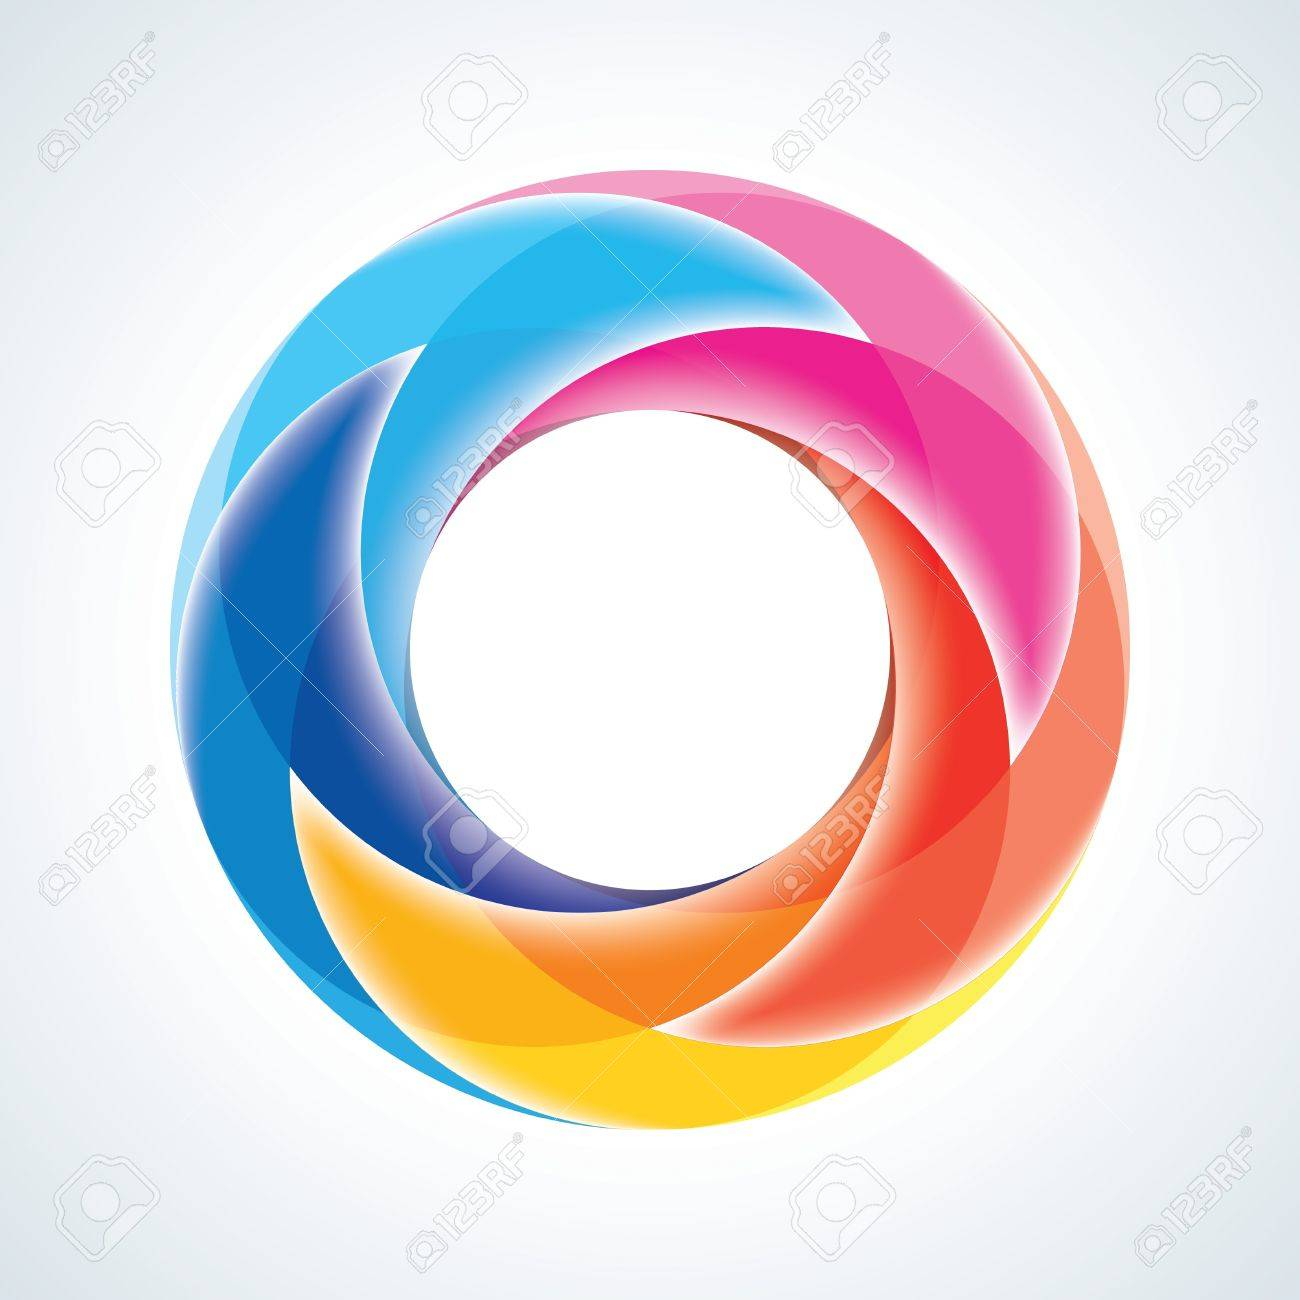 Abstract Infinite Loop Sign Template  Corporate Icon  5 Pieces Shape  EPS10 Stock Vector - 18393086